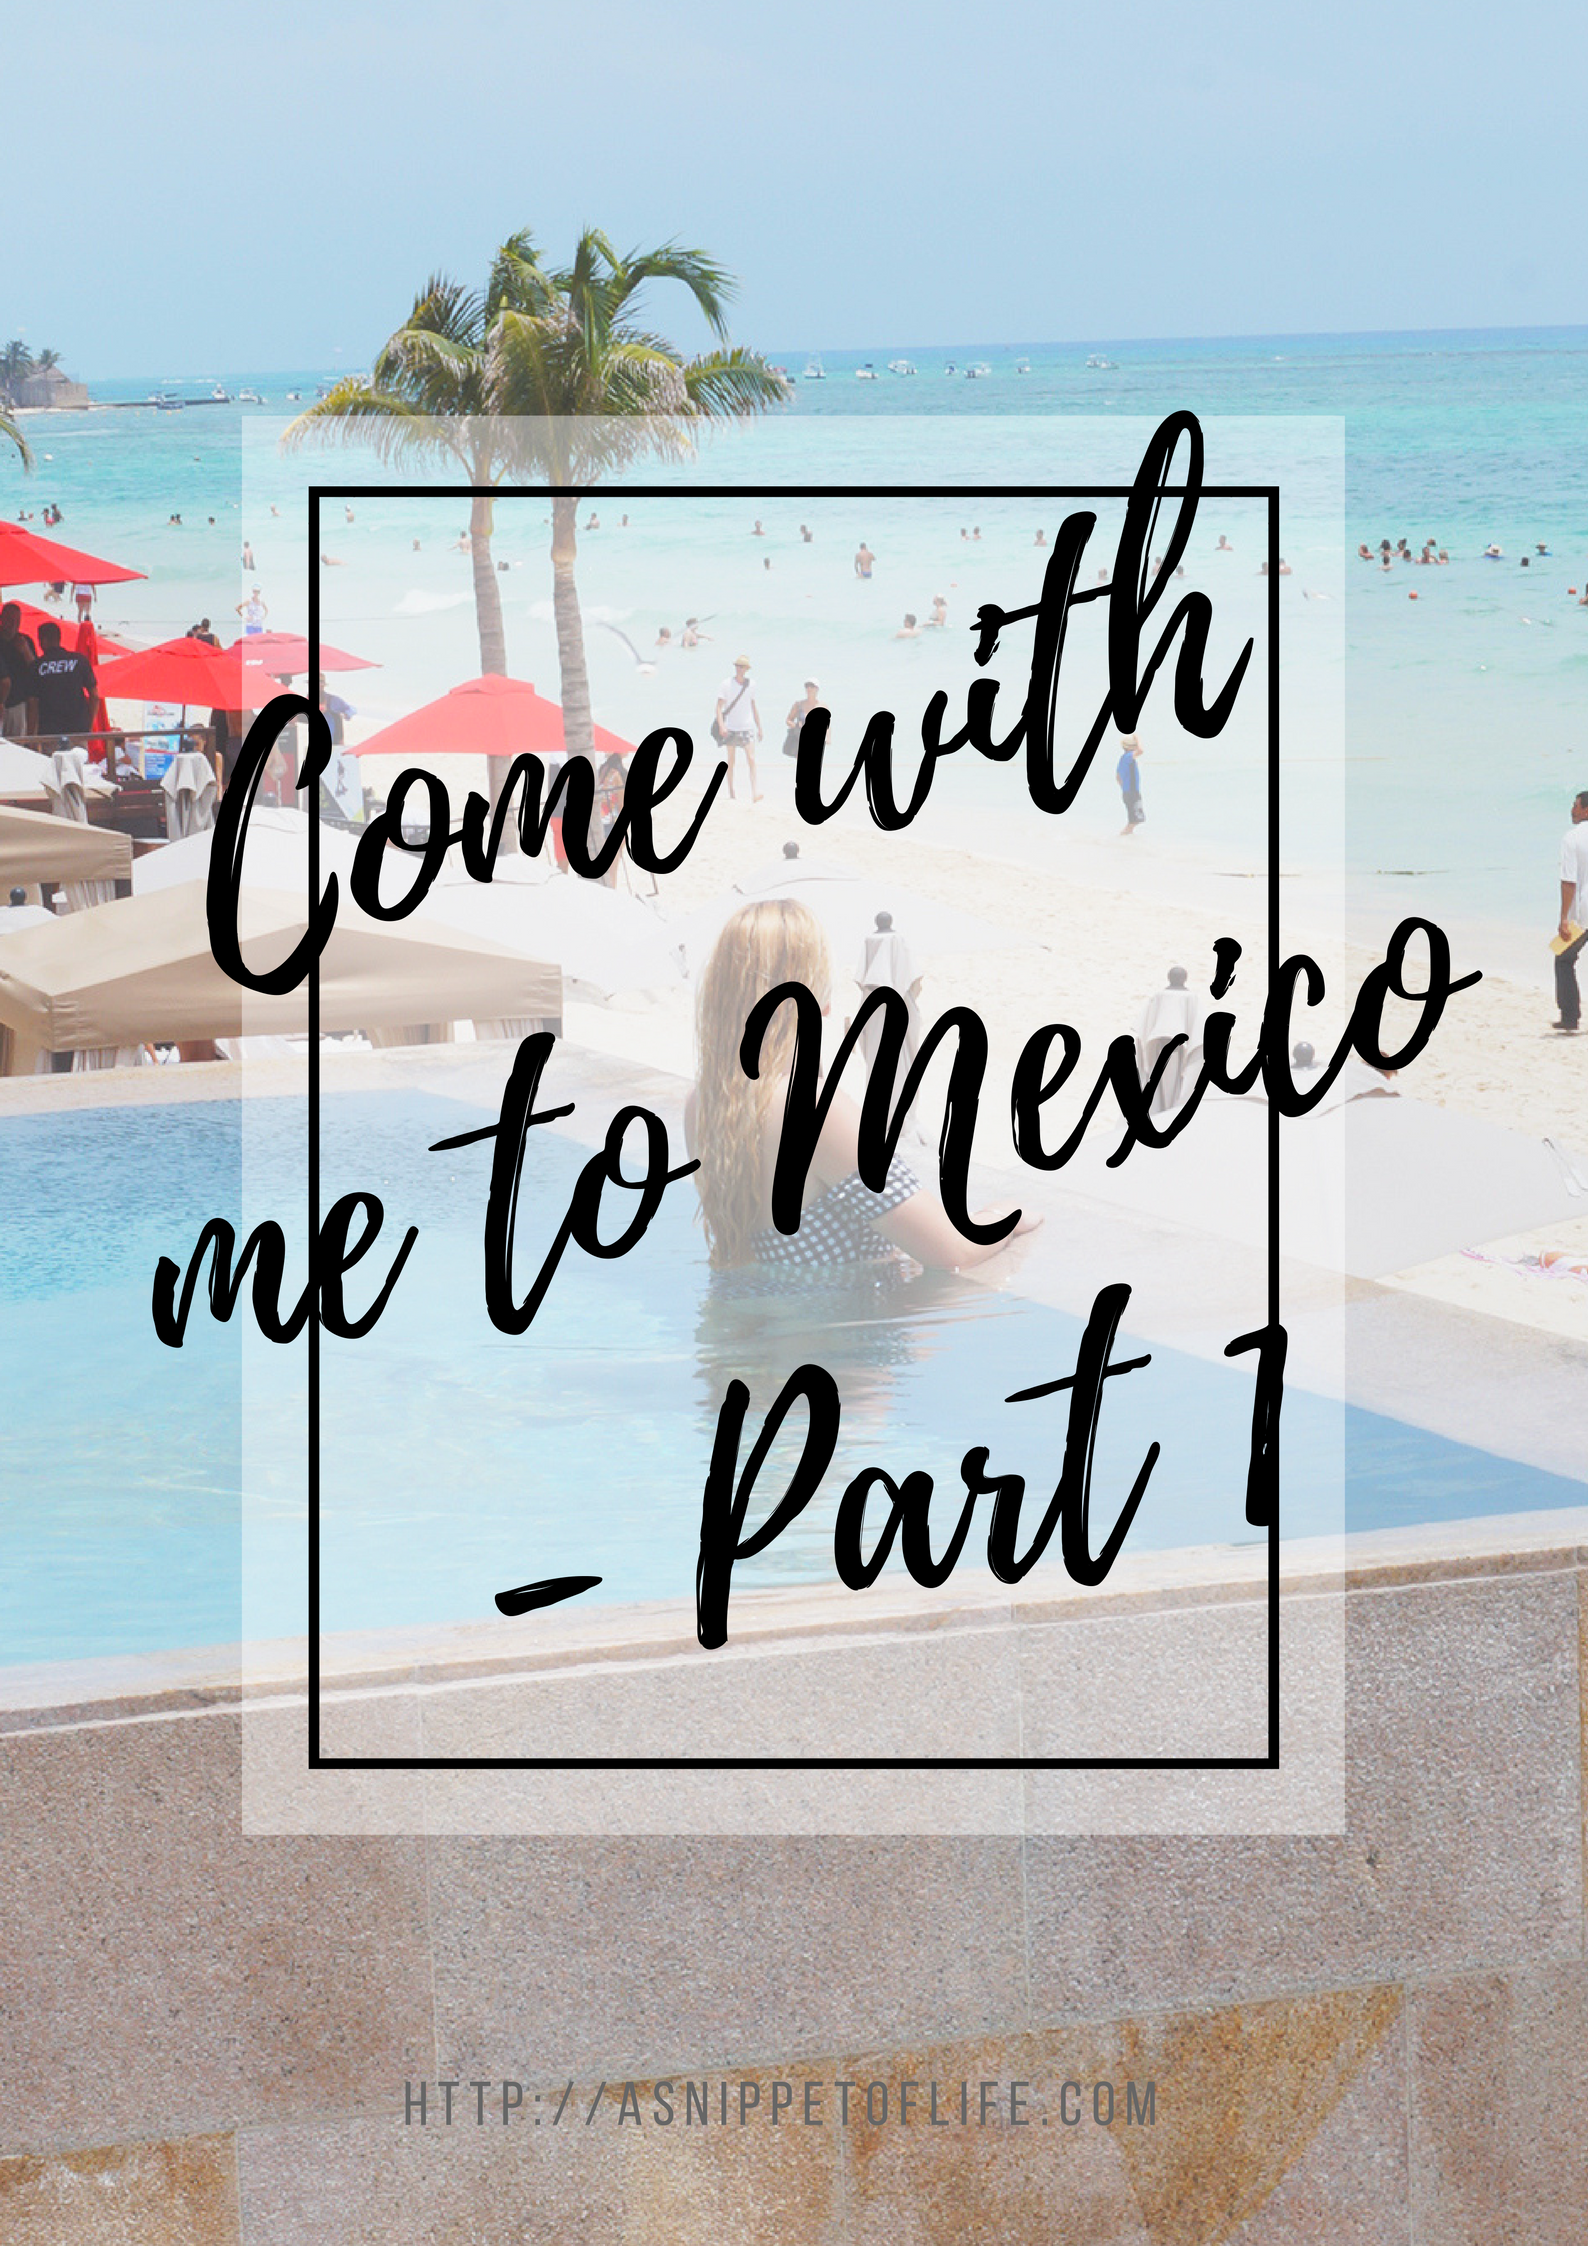 Come with me to Mexico - Part 1